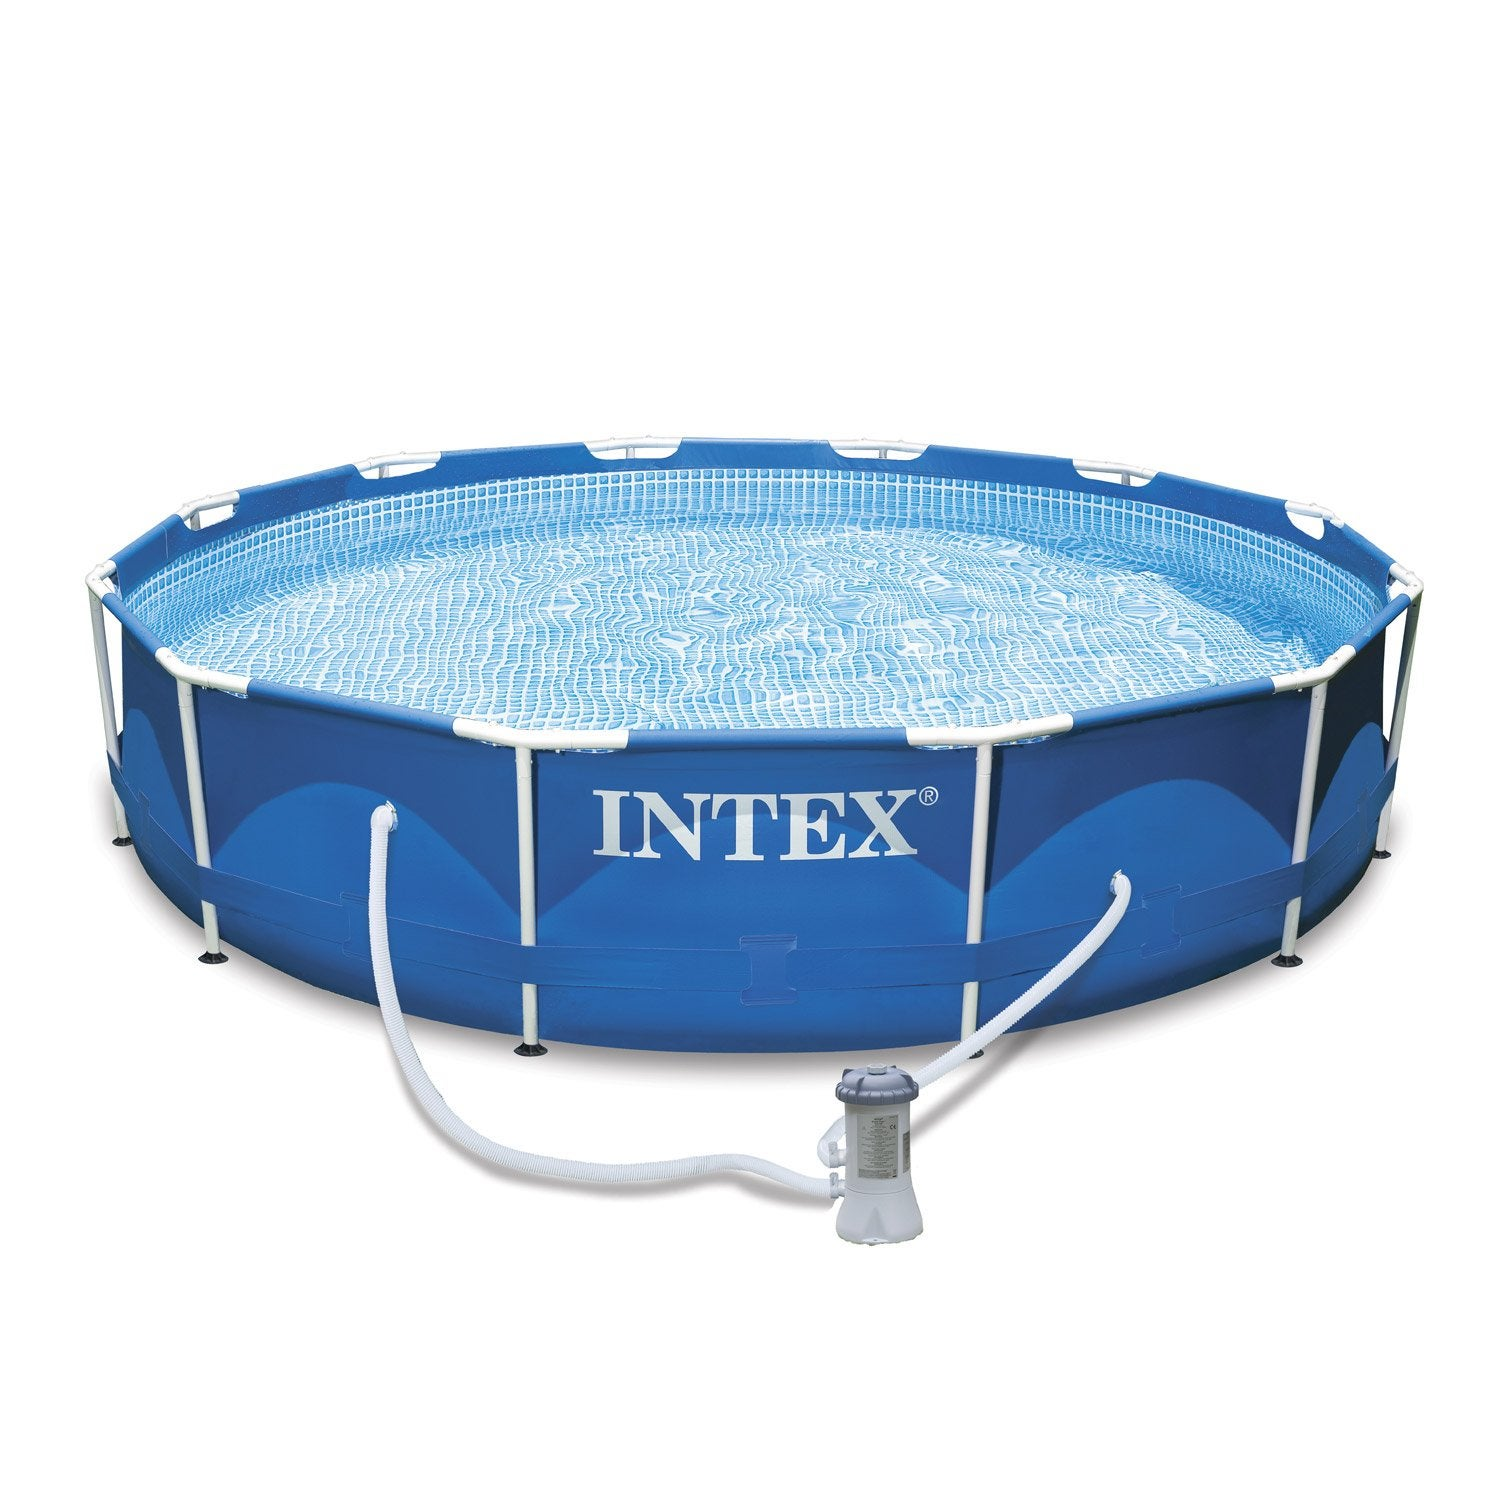 Piscine hors sol autoportante tubulaire 305x76 cm intex for Piscine hors sol 3x3